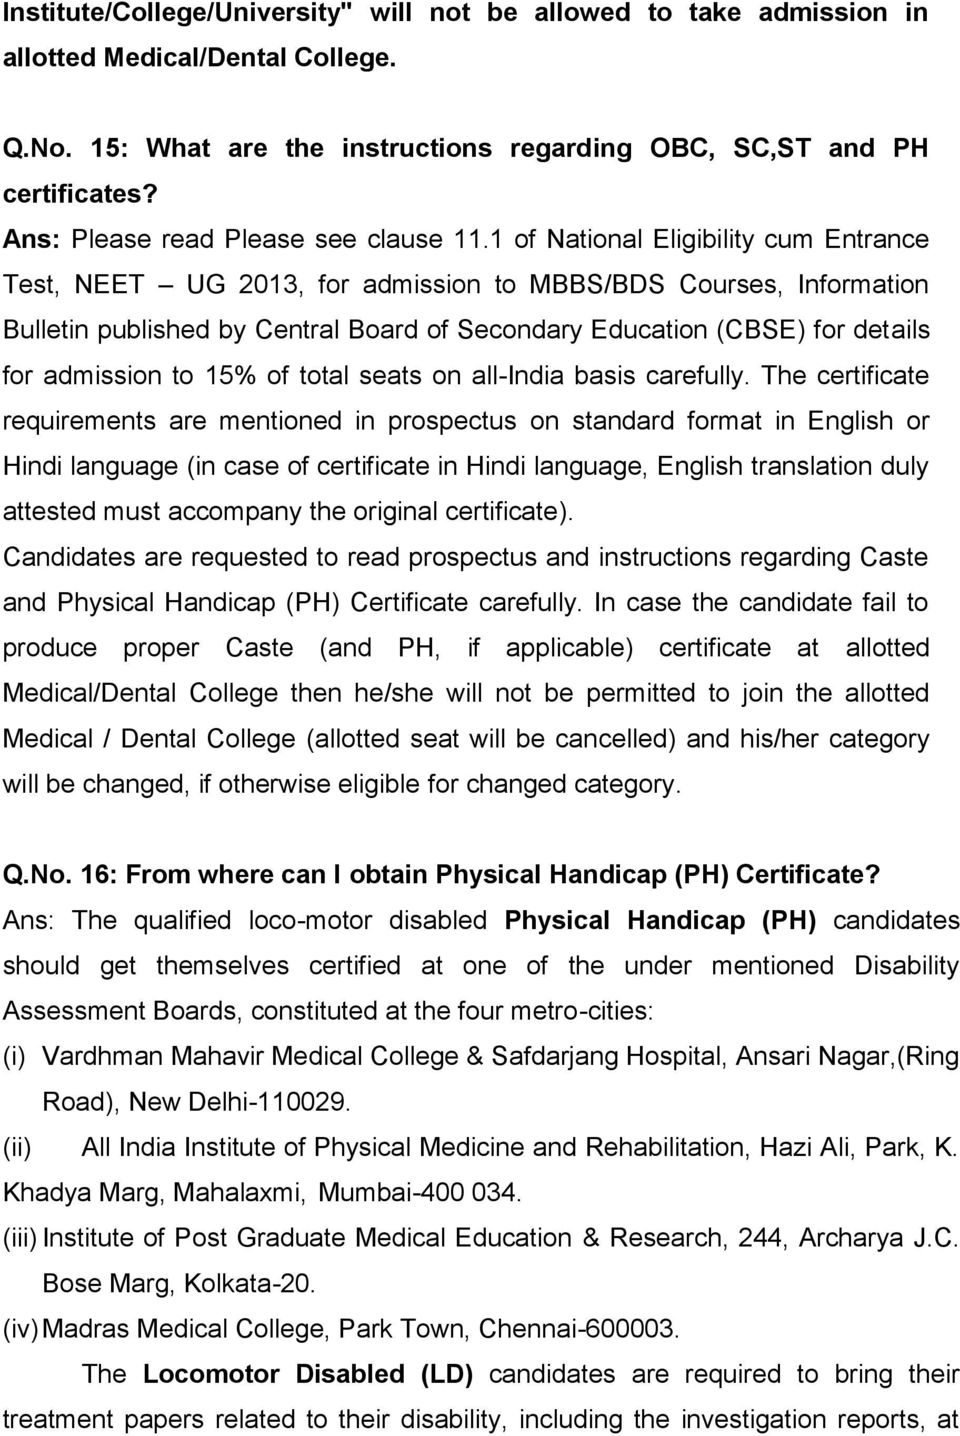 1 of National Eligibility cum Entrance Test, NEET UG 2013, for admission to MBBS/BDS Courses, Information Bulletin published by Central Board of Secondary Education (CBSE) for details for admission